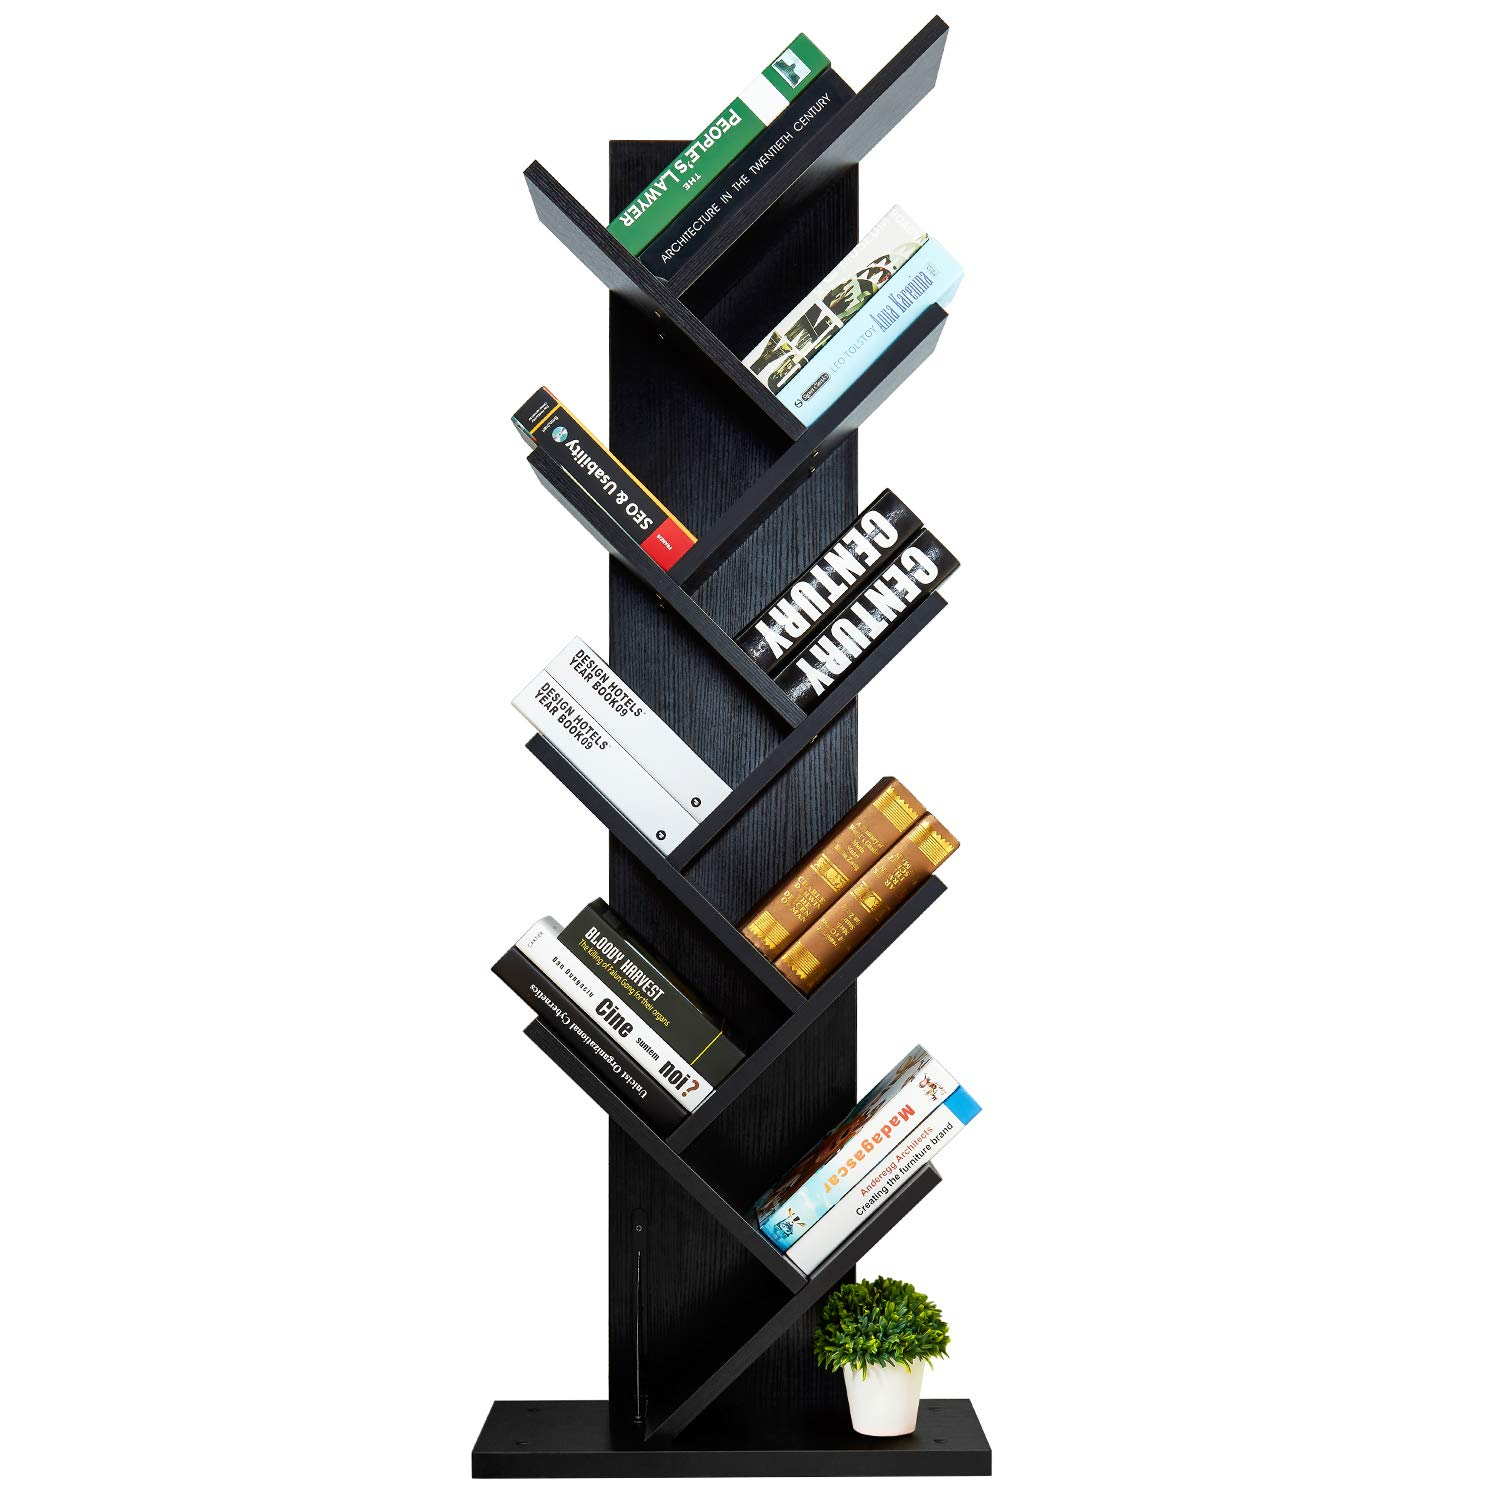 AUXLEY Tree-Shape Bookshelf Thickened Compact Book Rack Bookcase, 19.6 L9.8 W55.8 H, Black